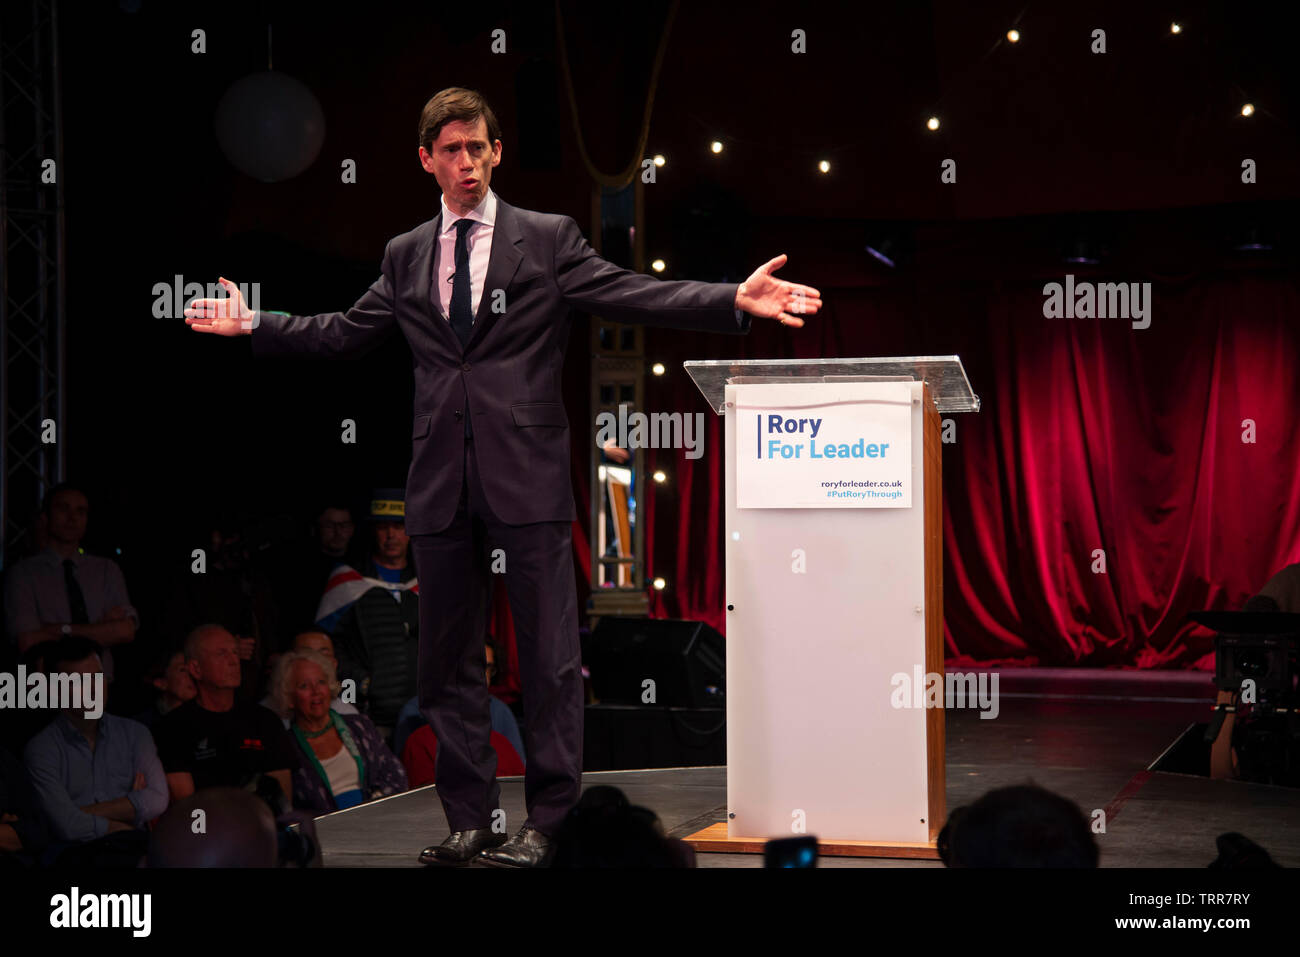 London, UK. 11th June, 2019. Rory Stewart MP formally launches his bid to become the new leader of the Conservative Party and Prime Minister of the United Kingdom. Credit: Claire Doherty/Alamy Live News Stock Photo